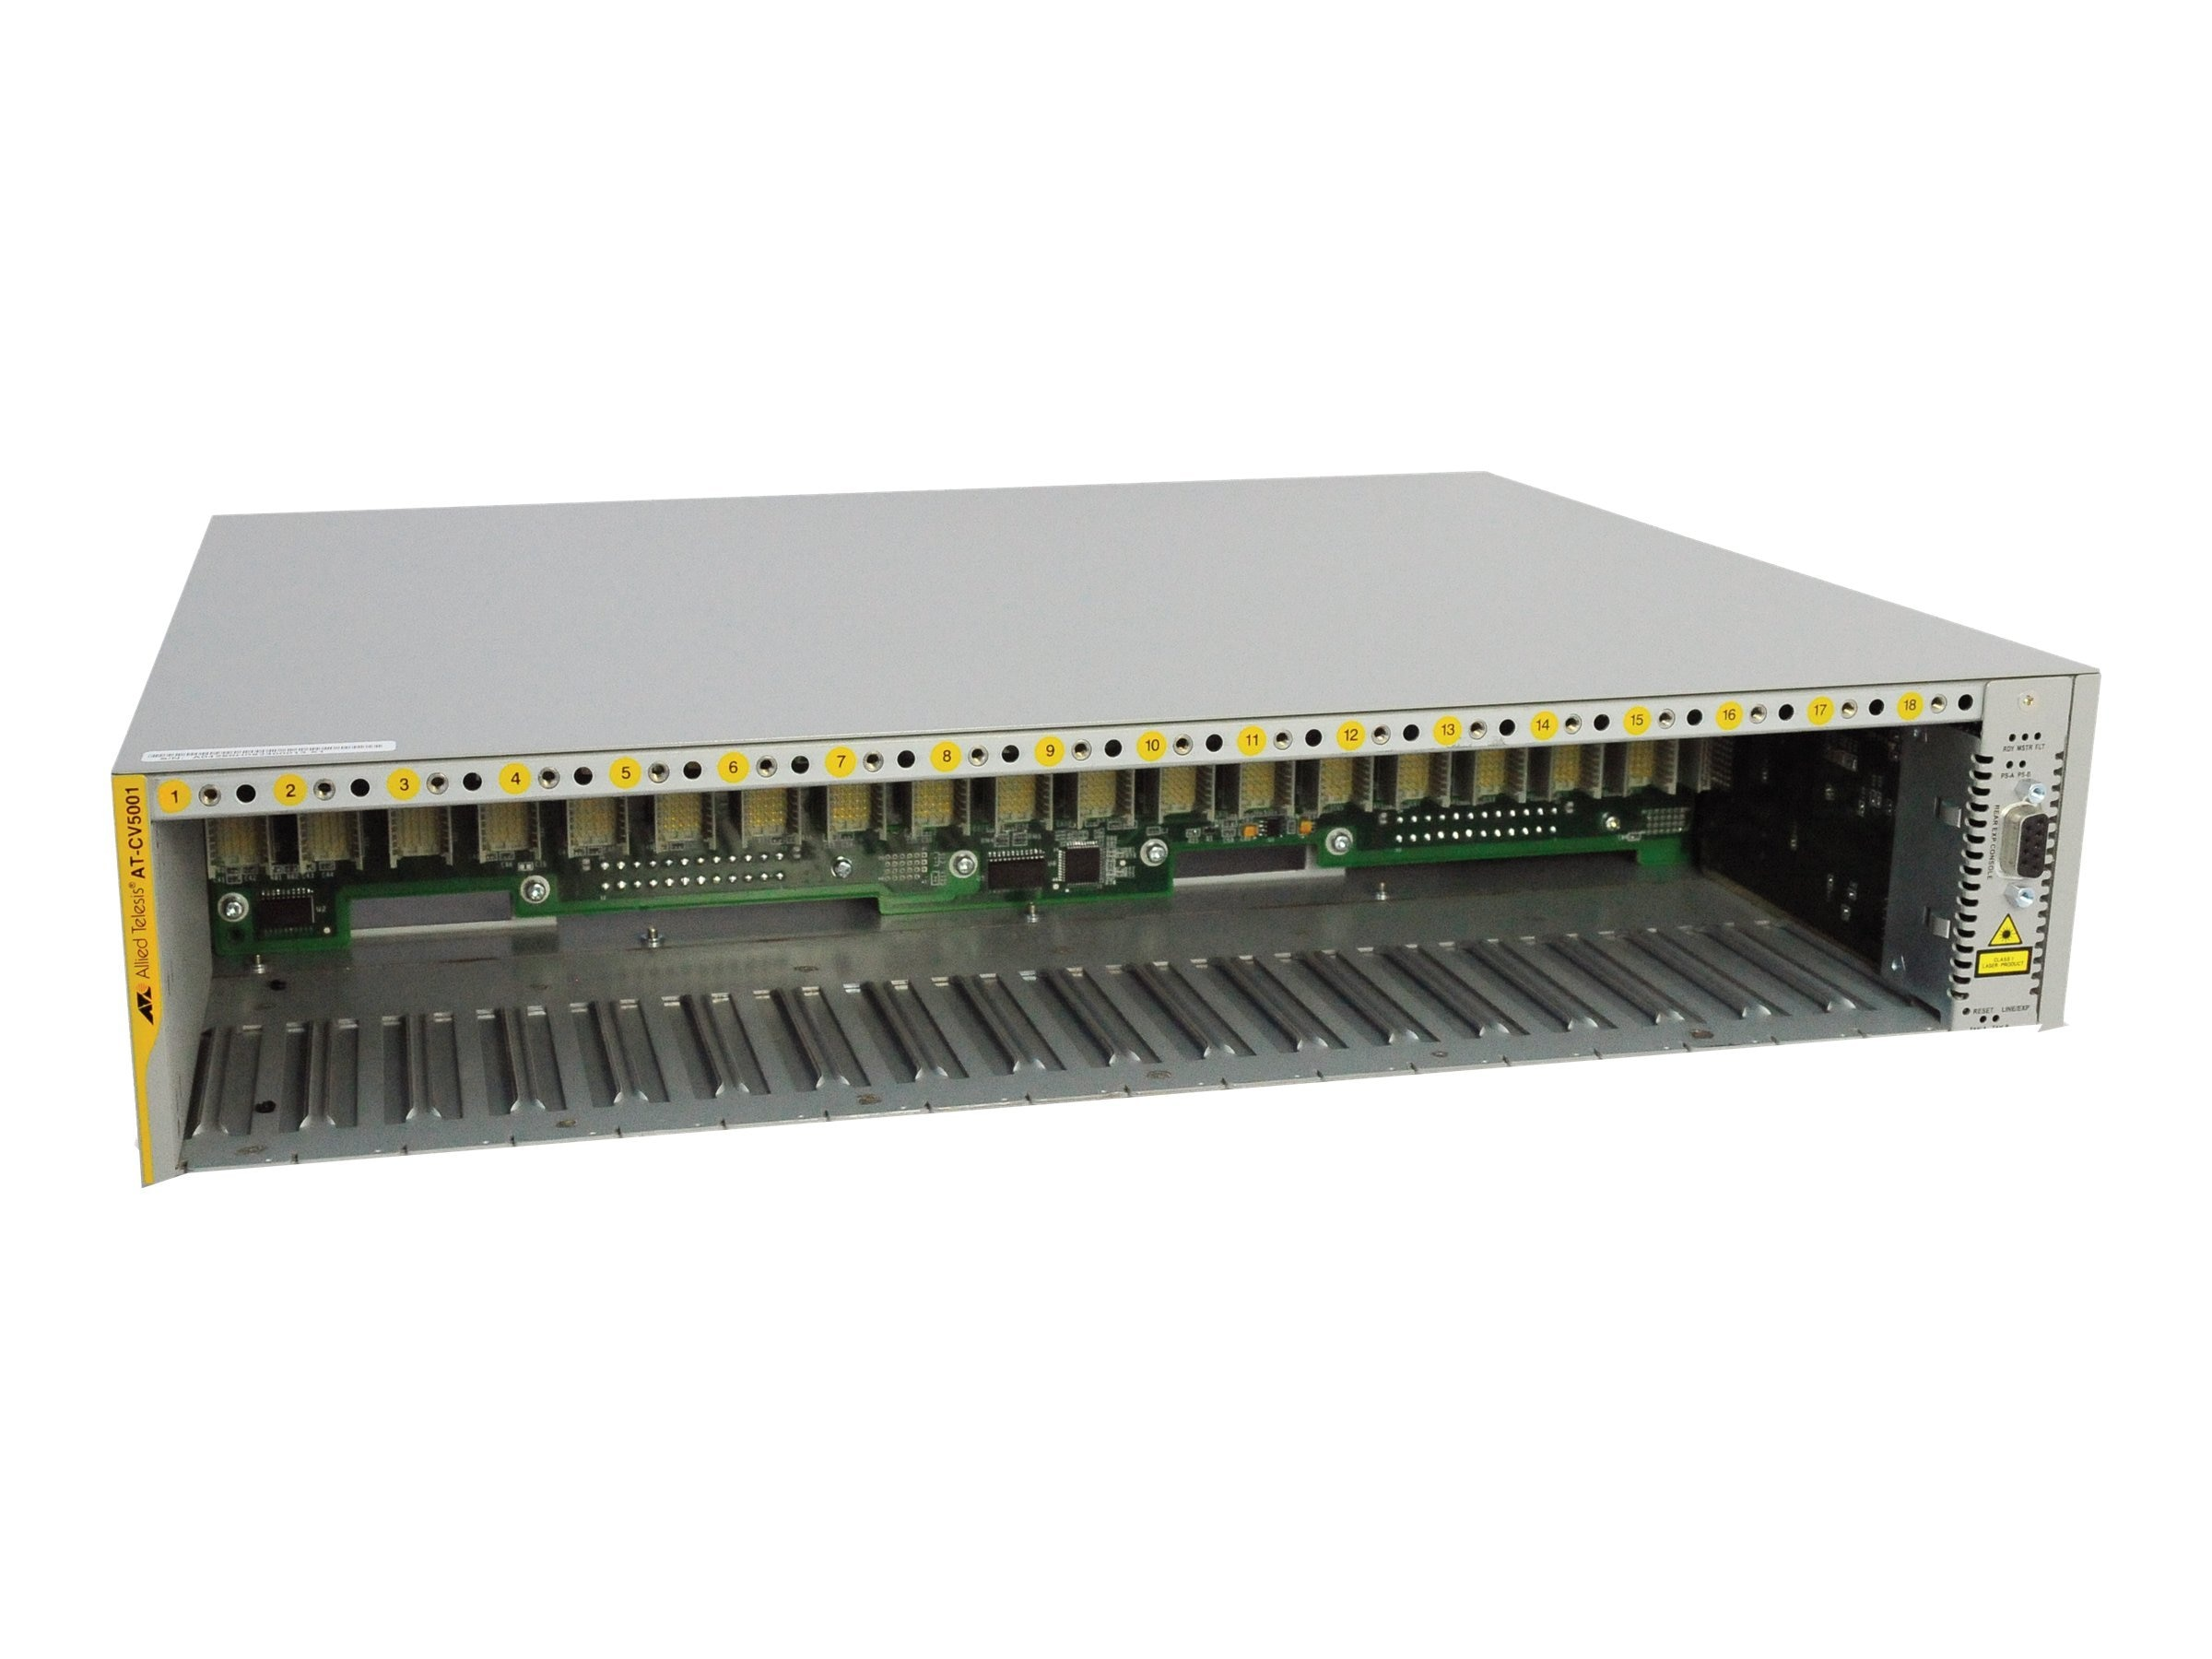 Allied Telesis Converteon 18 Slot Media Converter Chassis No Power Supply, AT-CV5001, 11809921, Network Transceivers